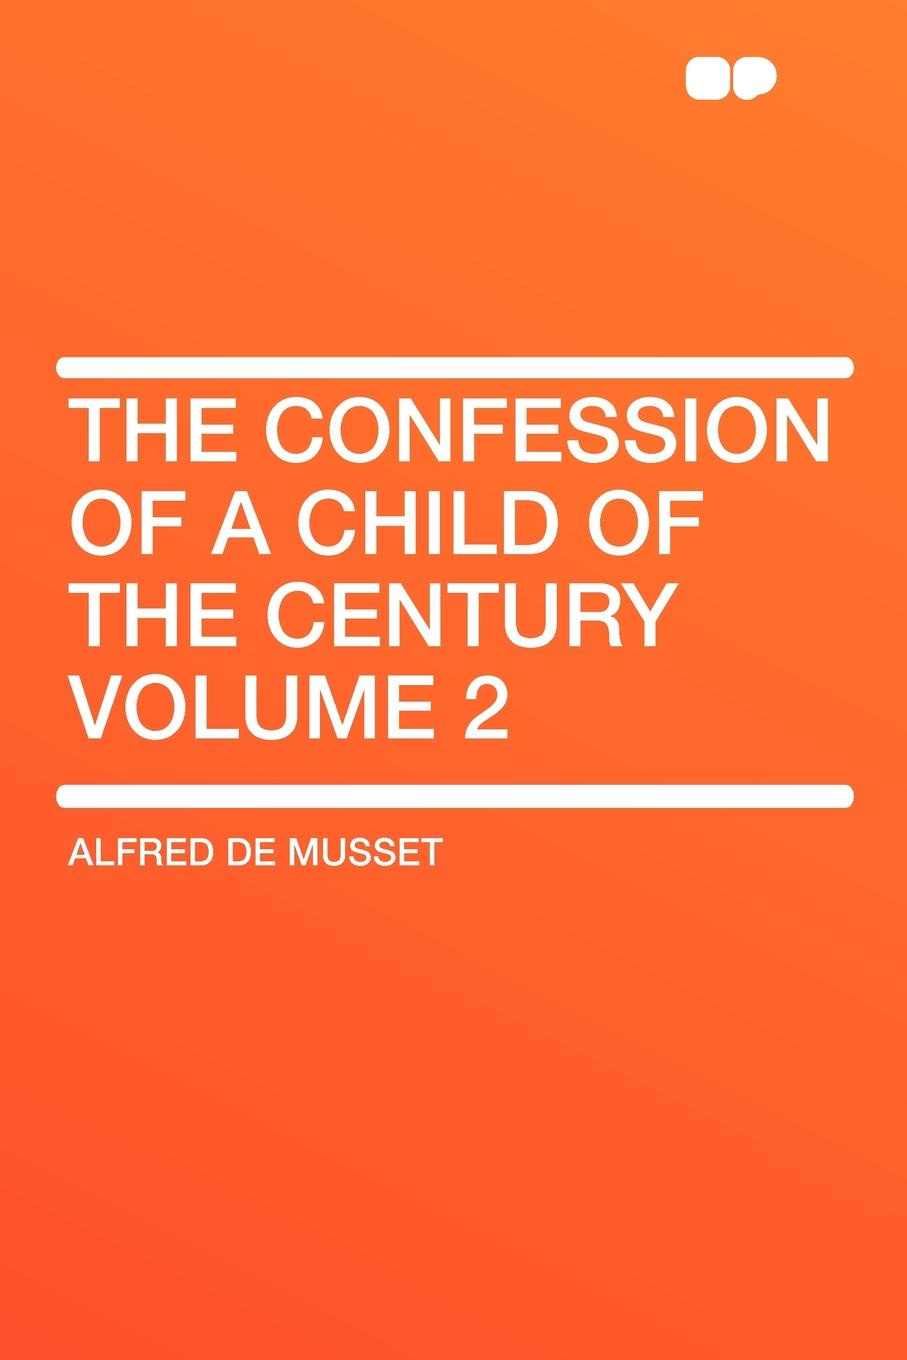 лучшая цена Alfred de Musset The Confession of a Child of the Century Volume 2